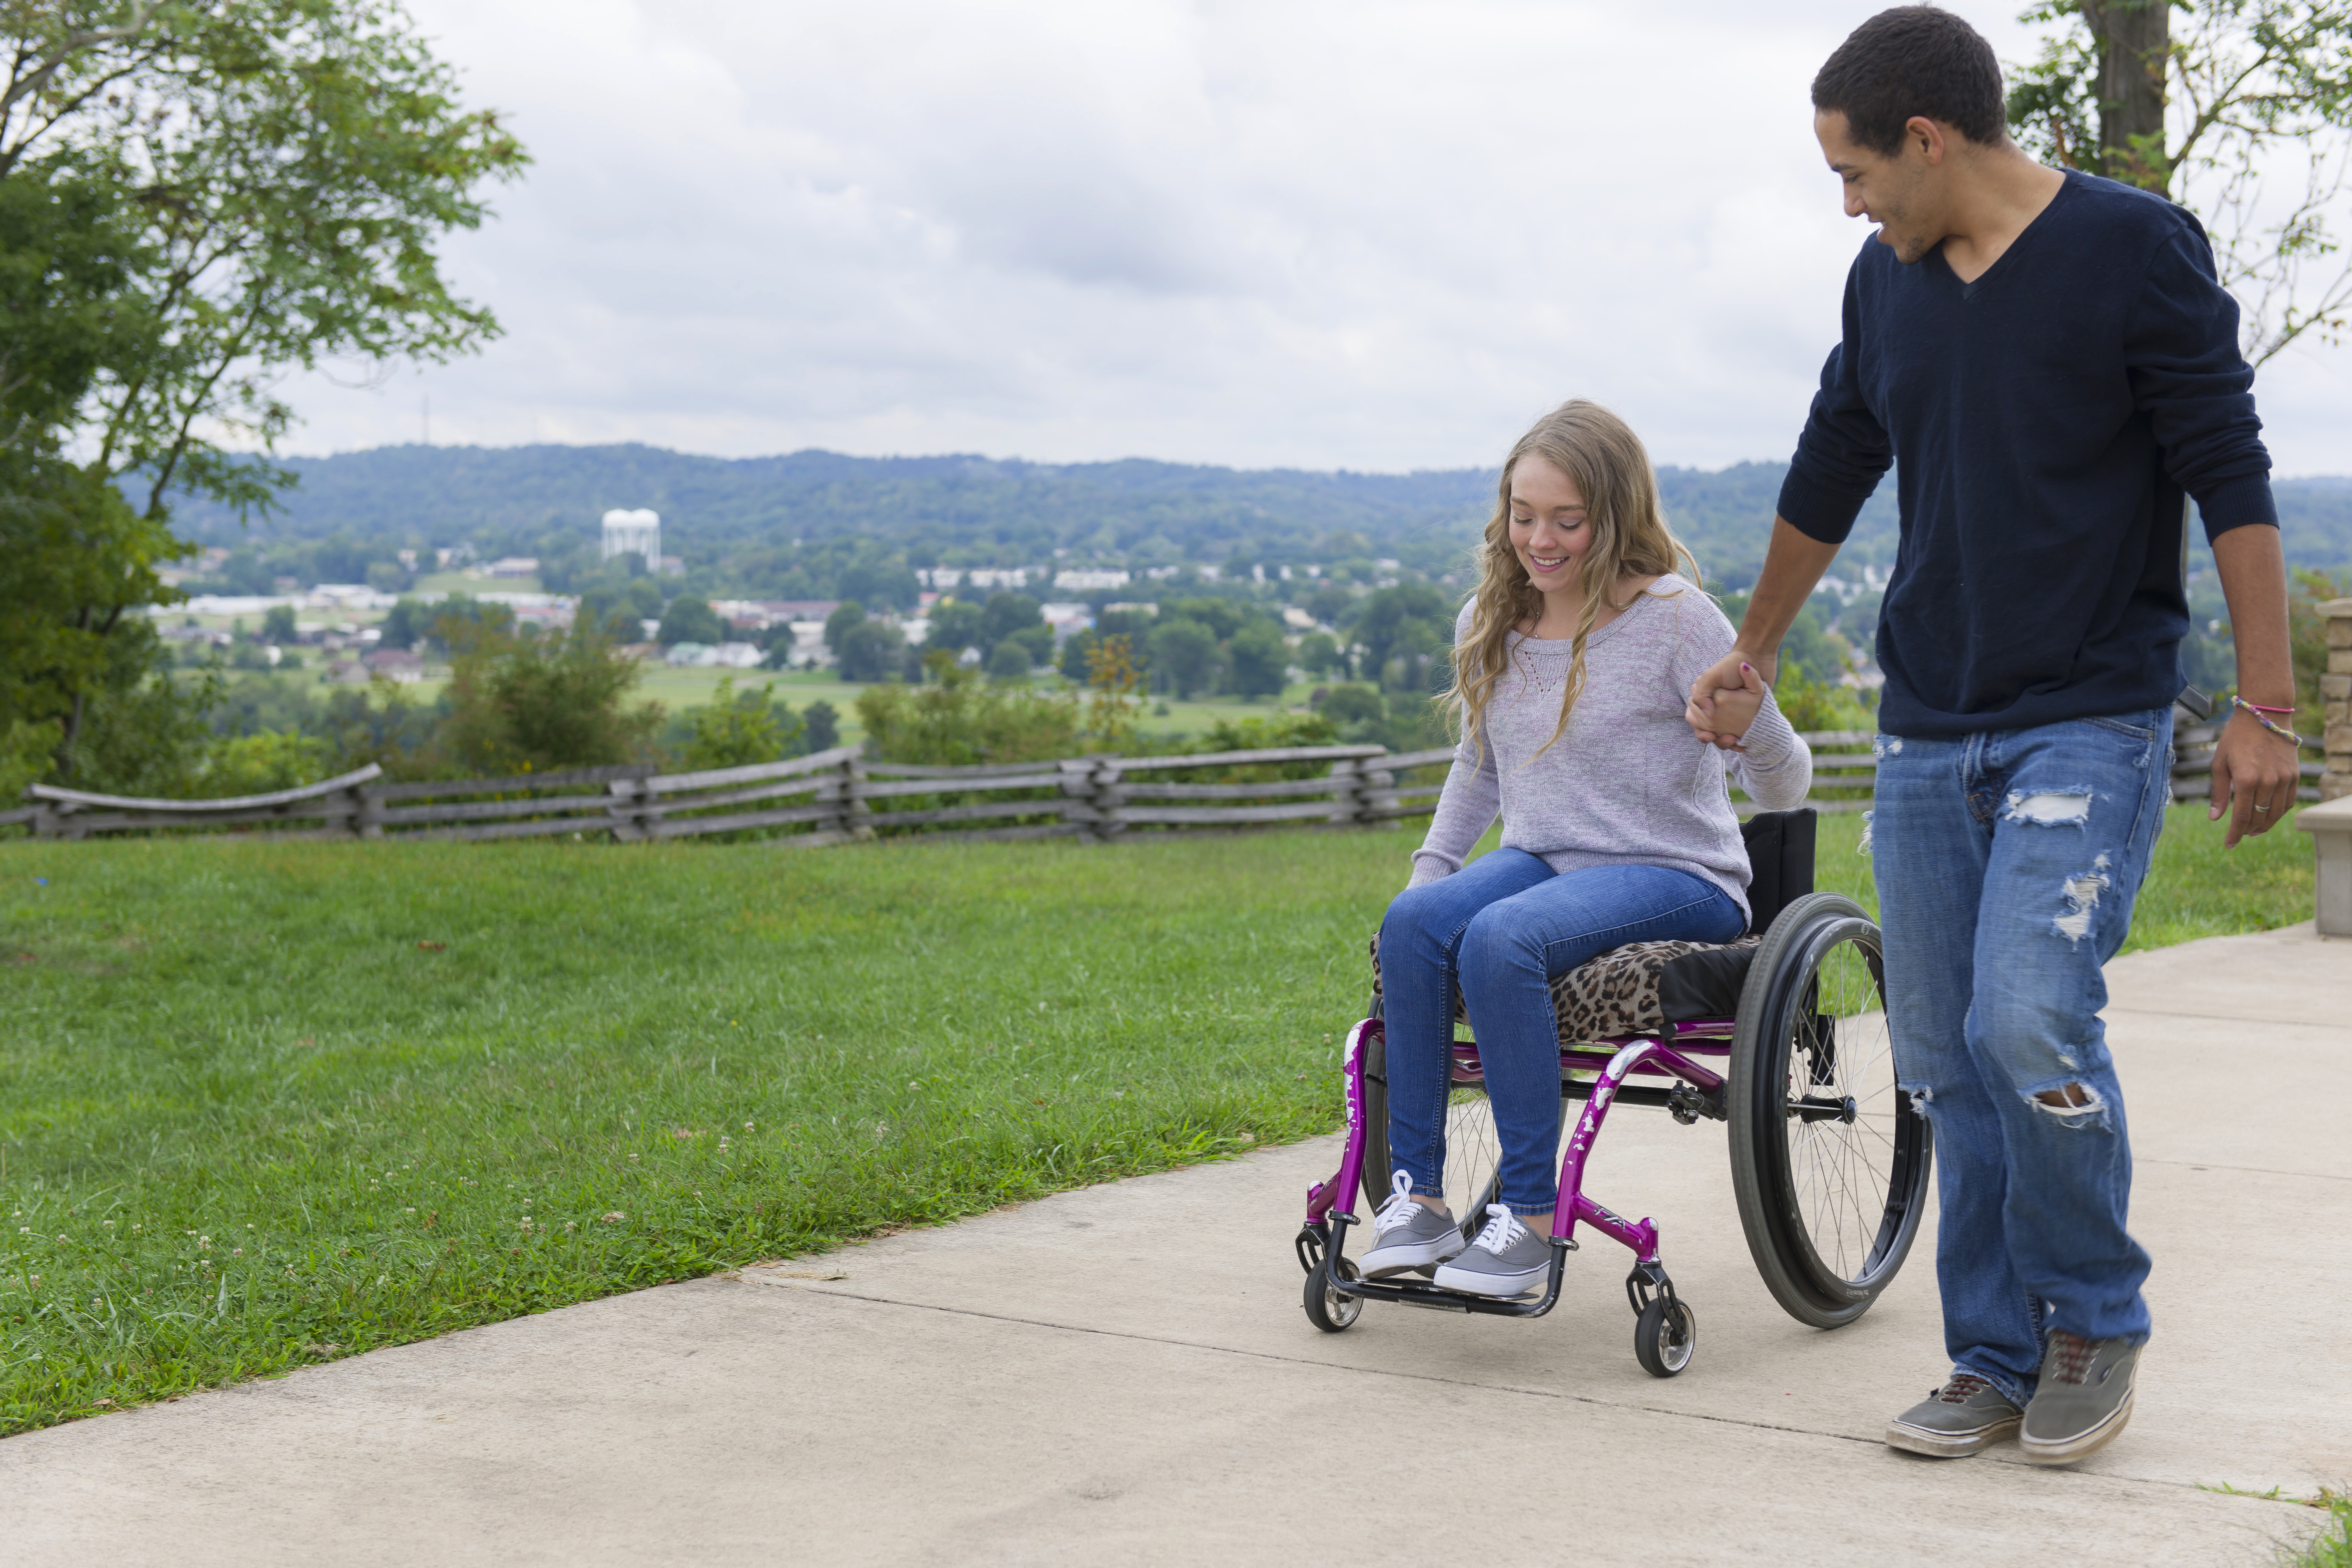 woman in wheelchair outside holding hands with a man walking